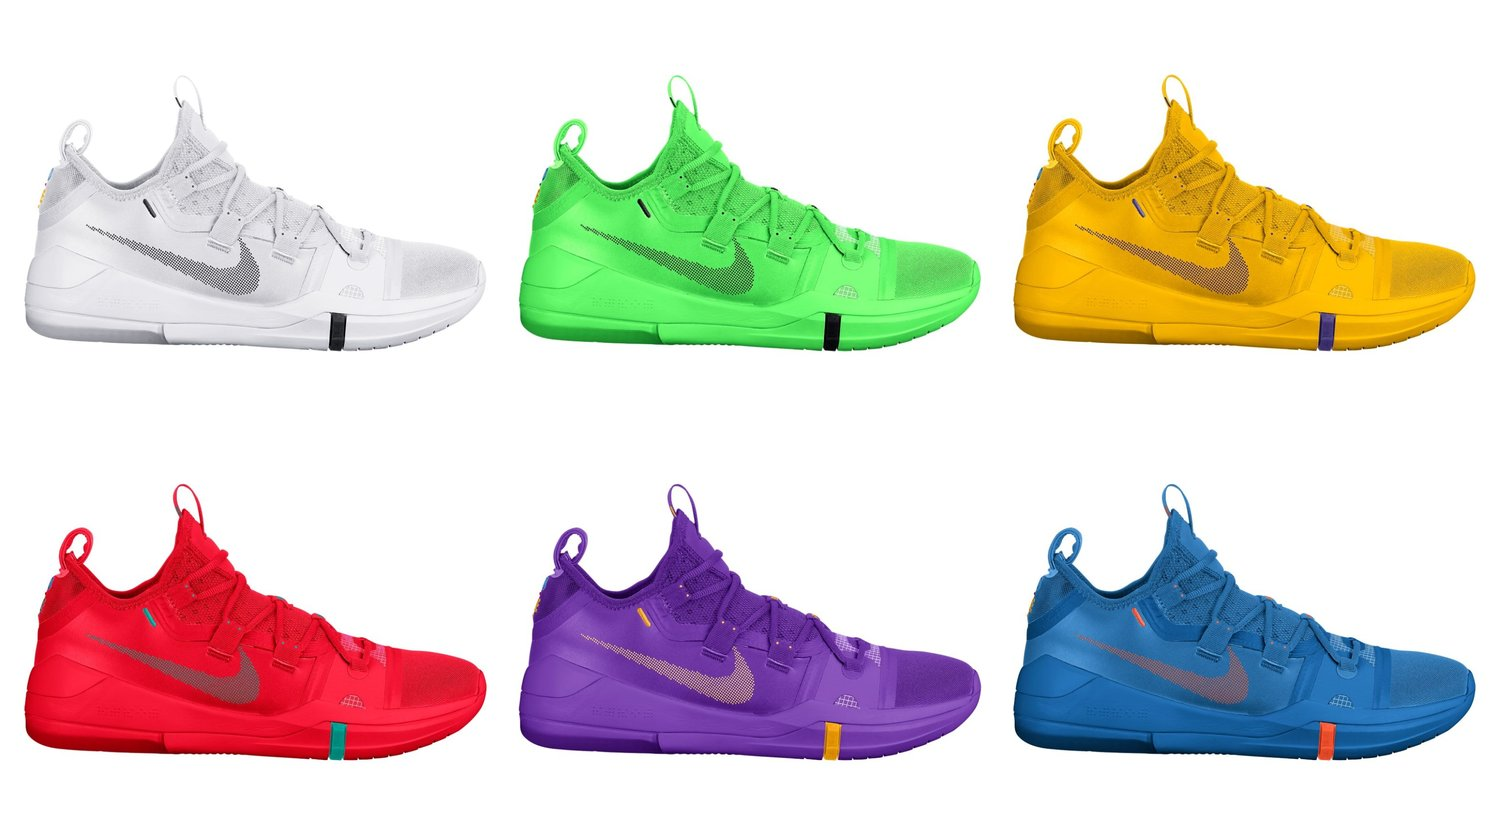 newest bf9e8 b3f60 Now Available: Nike Kobe A.D.